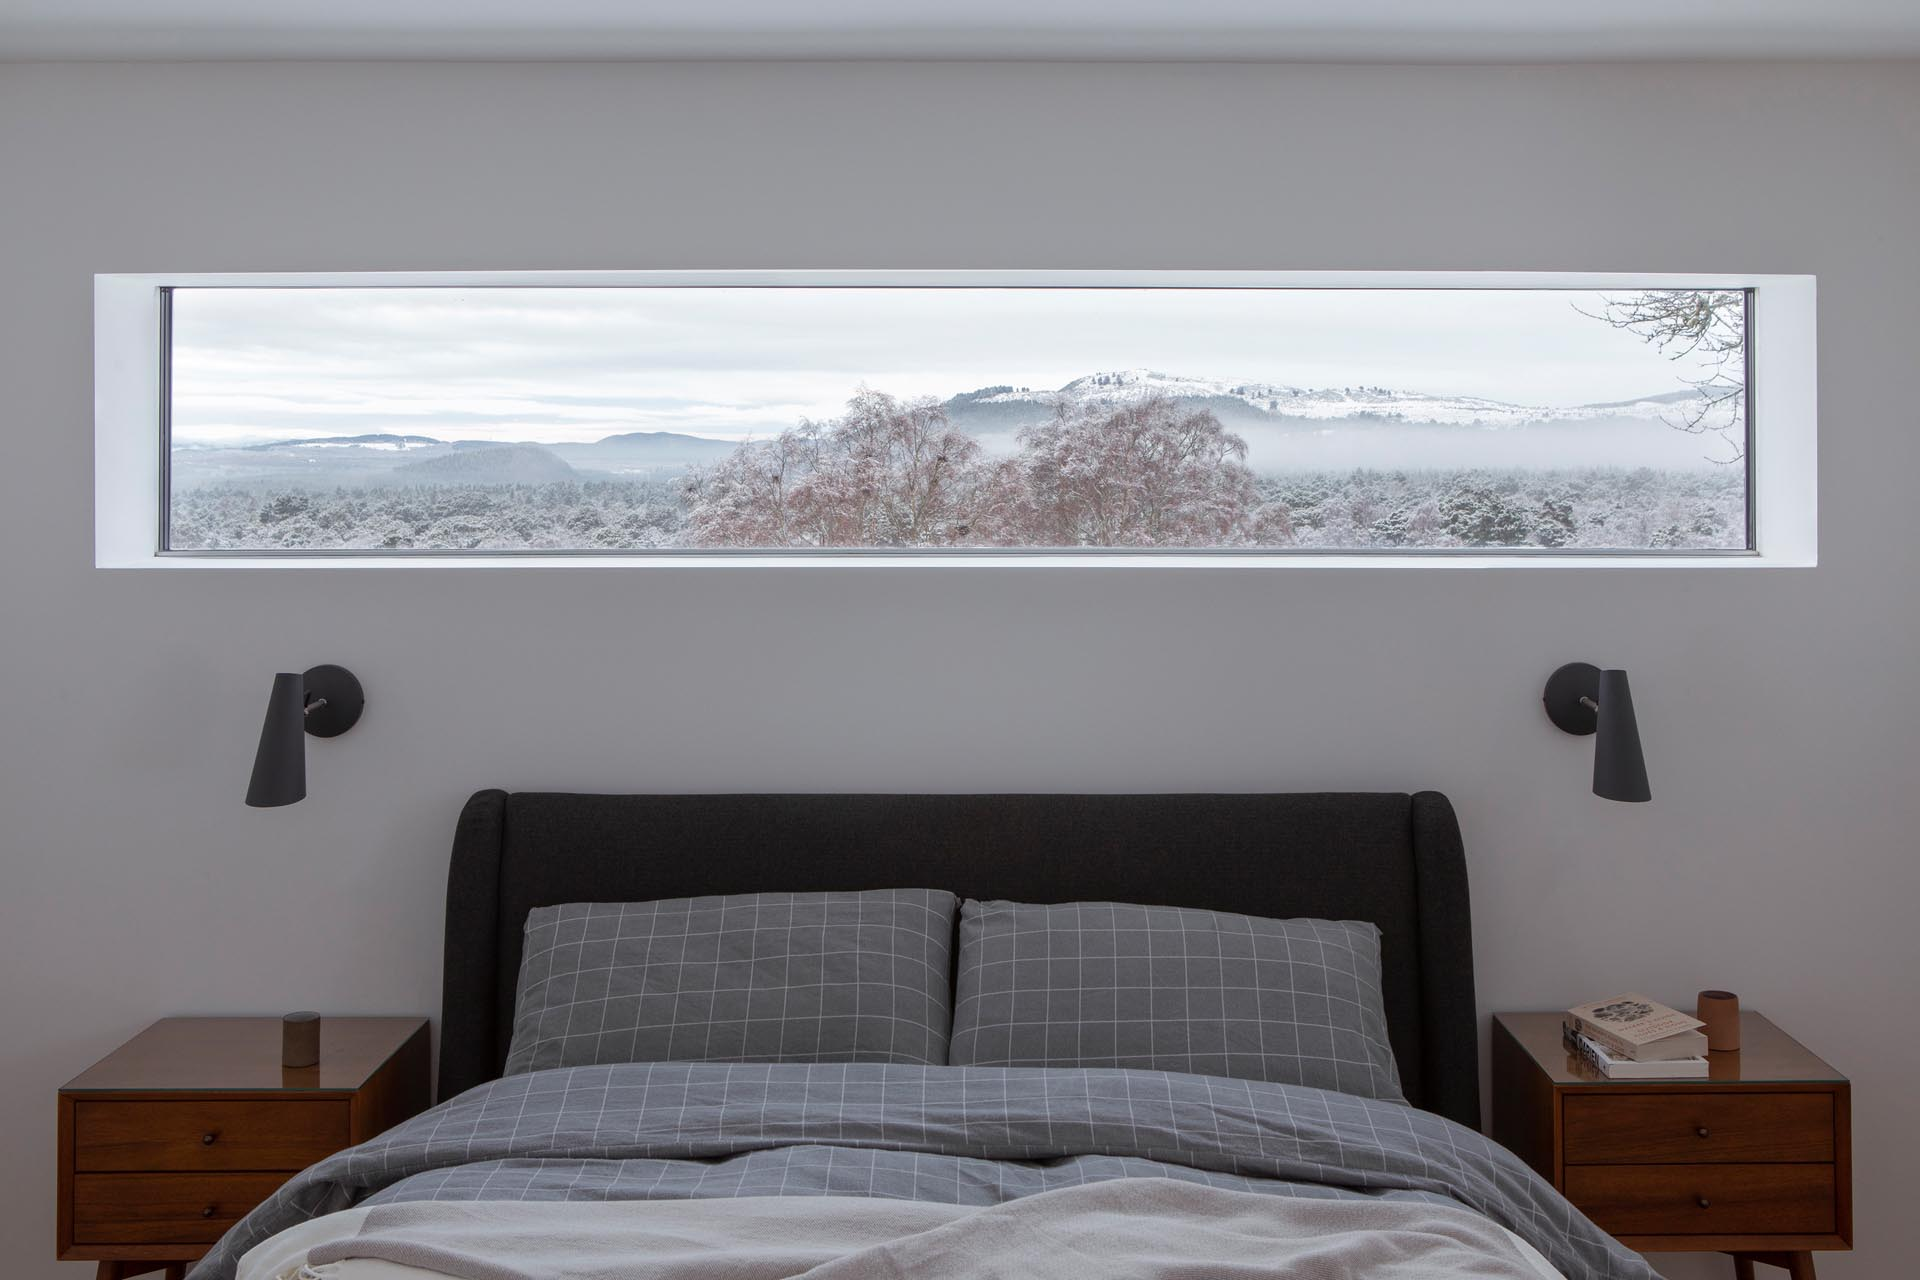 In this modern bedroom, a thin horizontal window removes the need for artwork, as it perfectly frames the view.